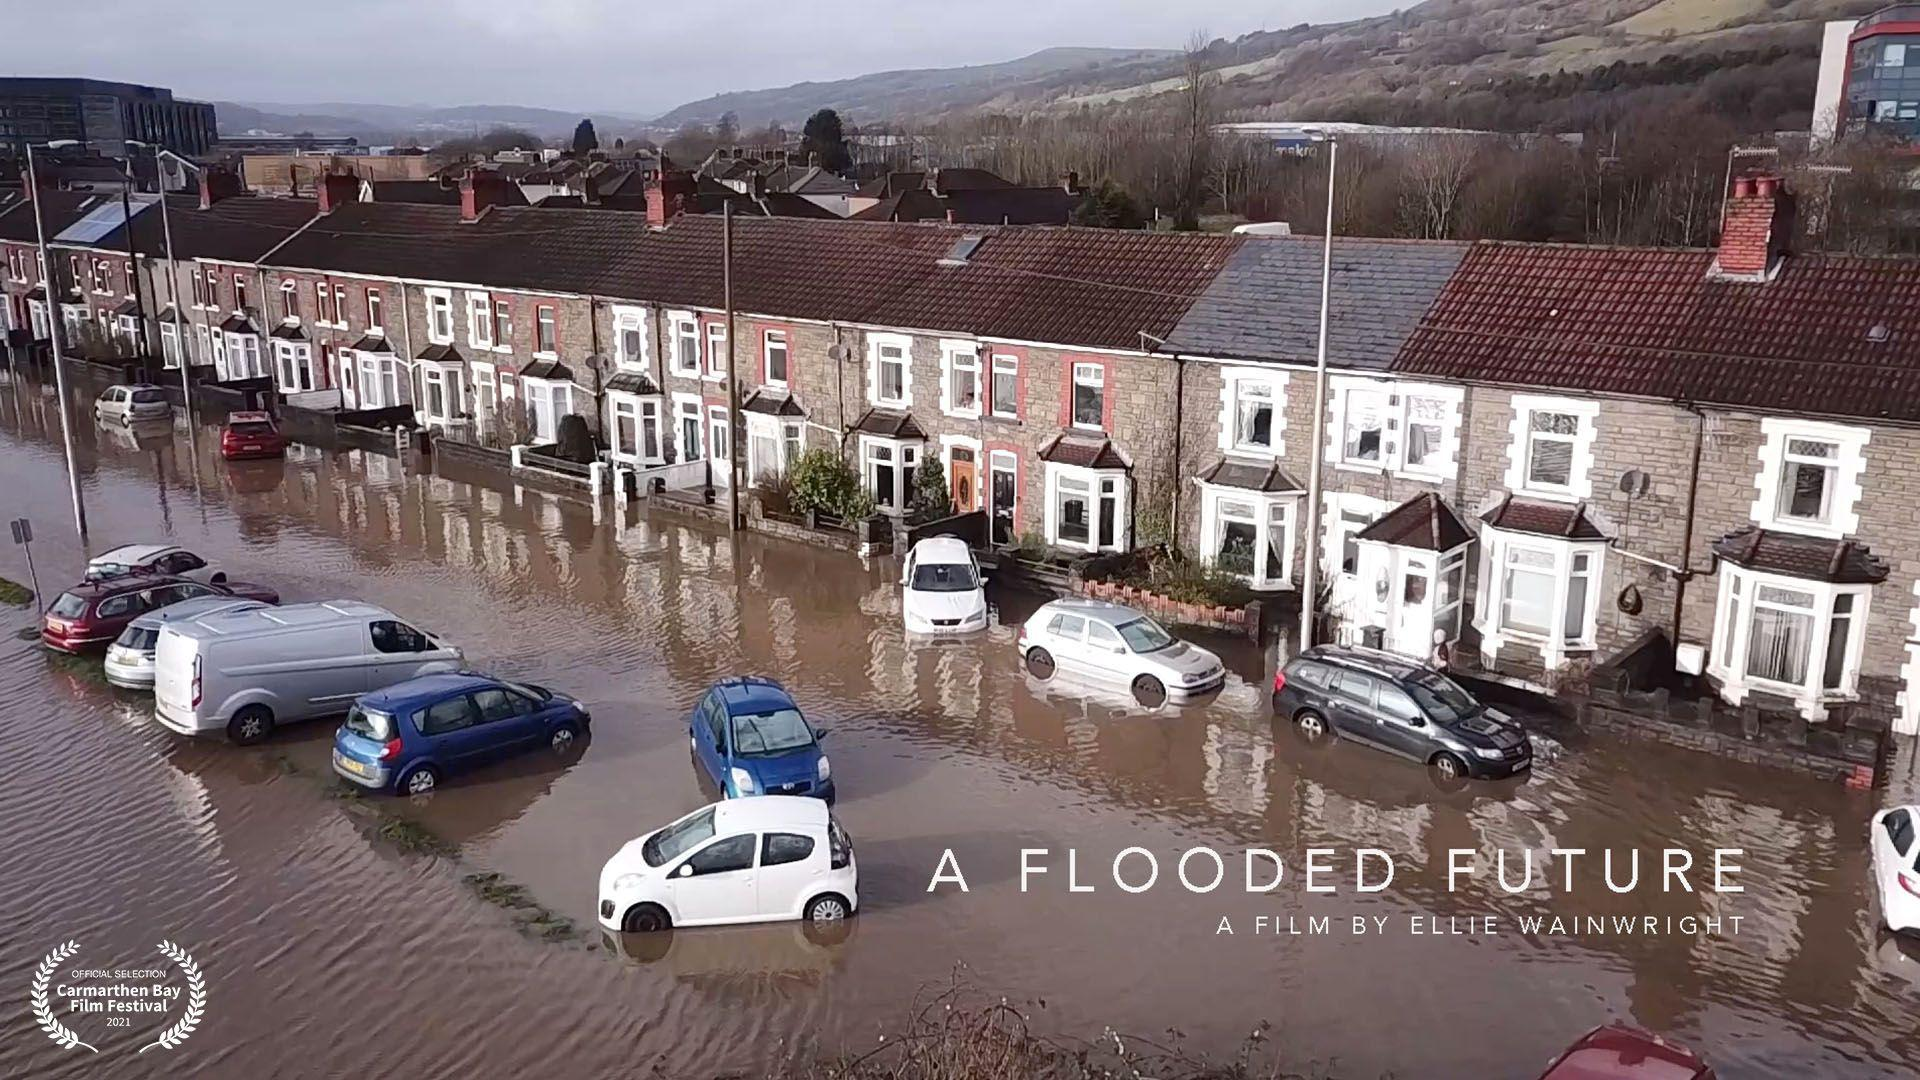 A Flooded Future